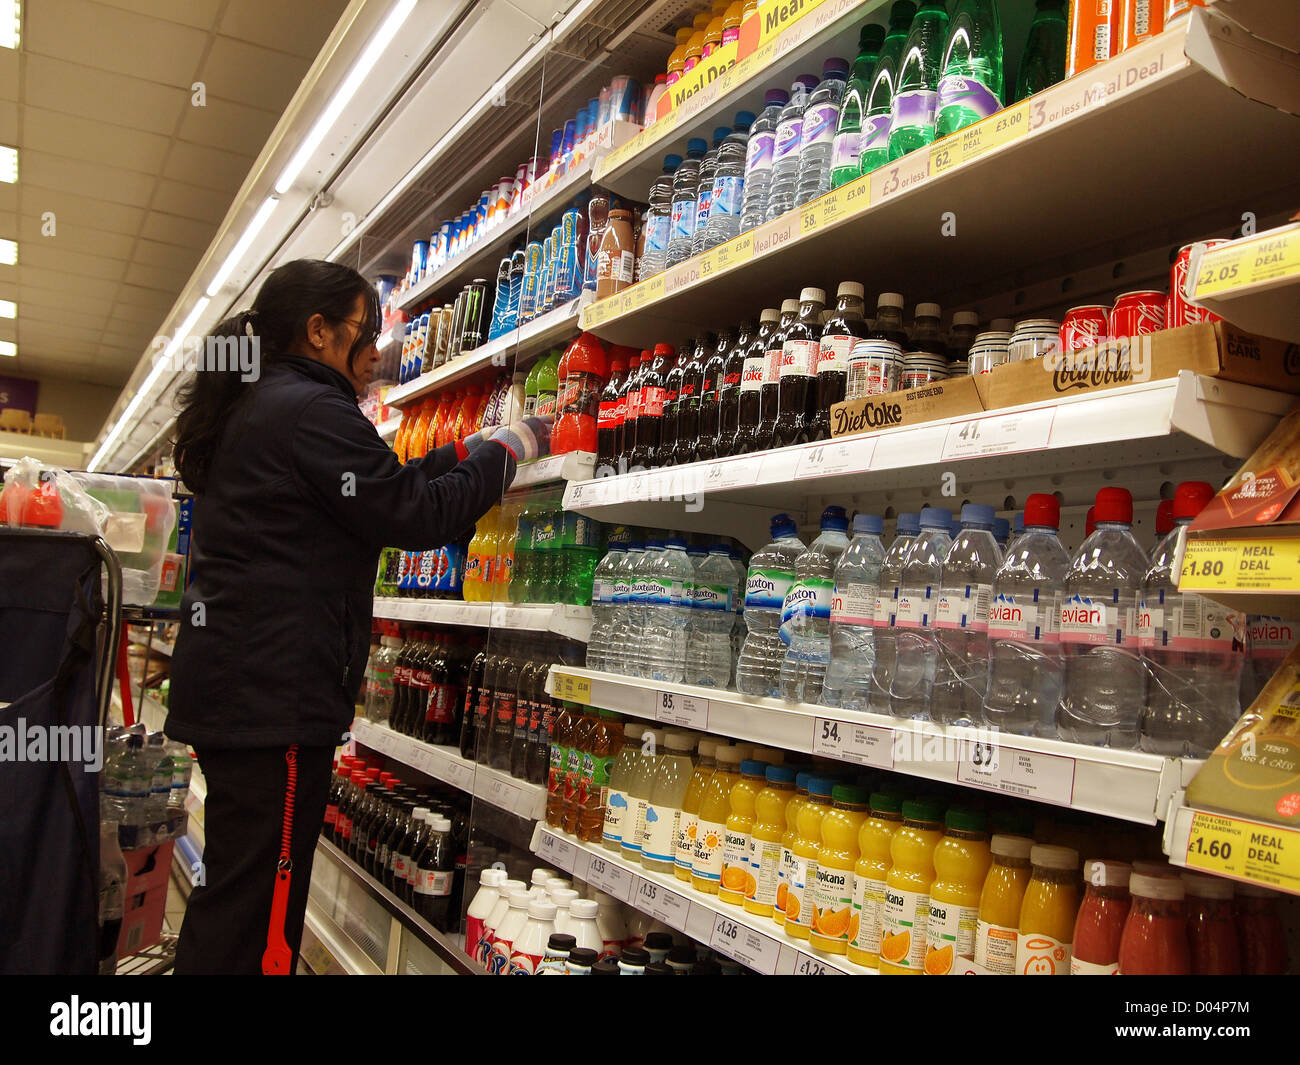 Staff Stacking Shelves In Tesco Stock Photo: 51736376 - Alamy